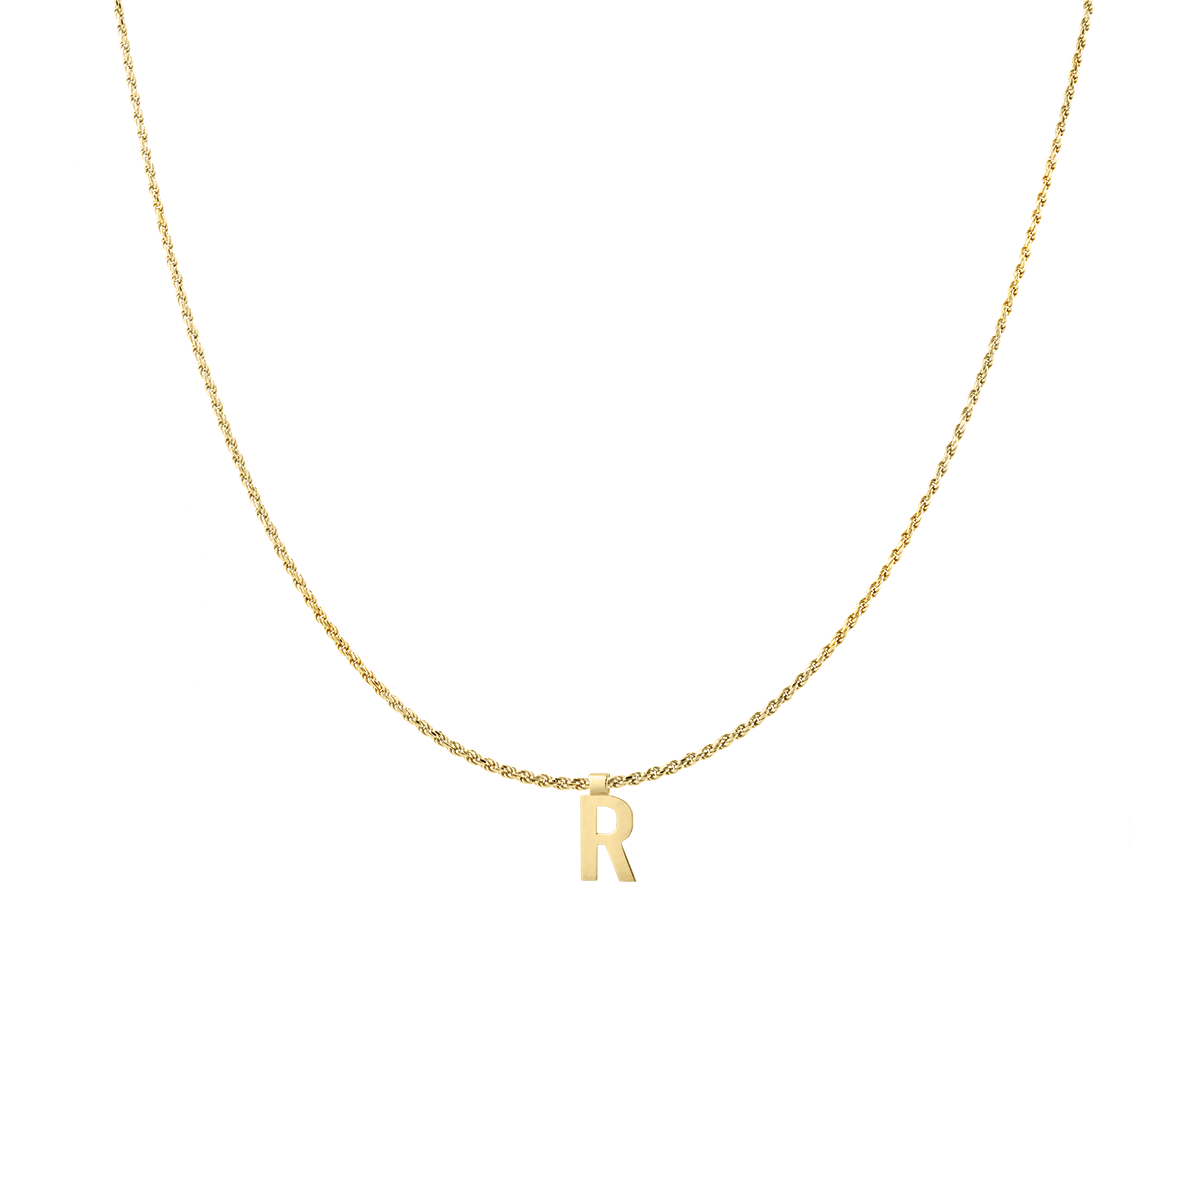 Ruby Rope Letter Necklace Bijenkorf